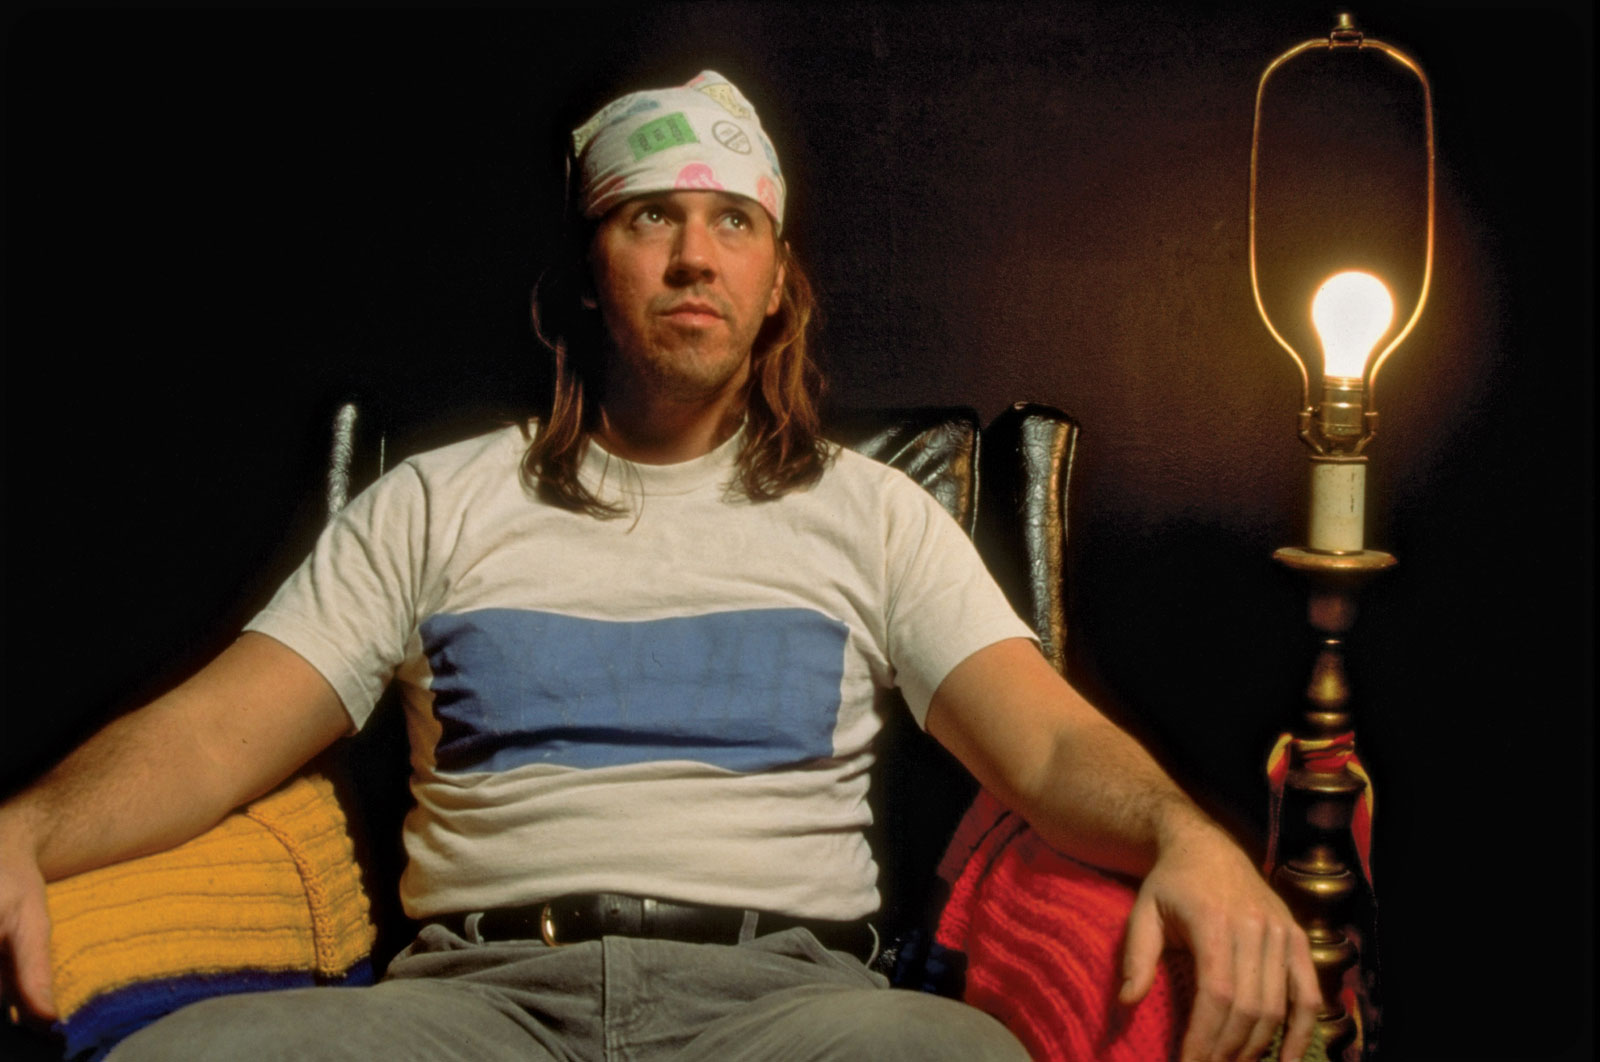 addicaid-david-foster-wallace1.jpg